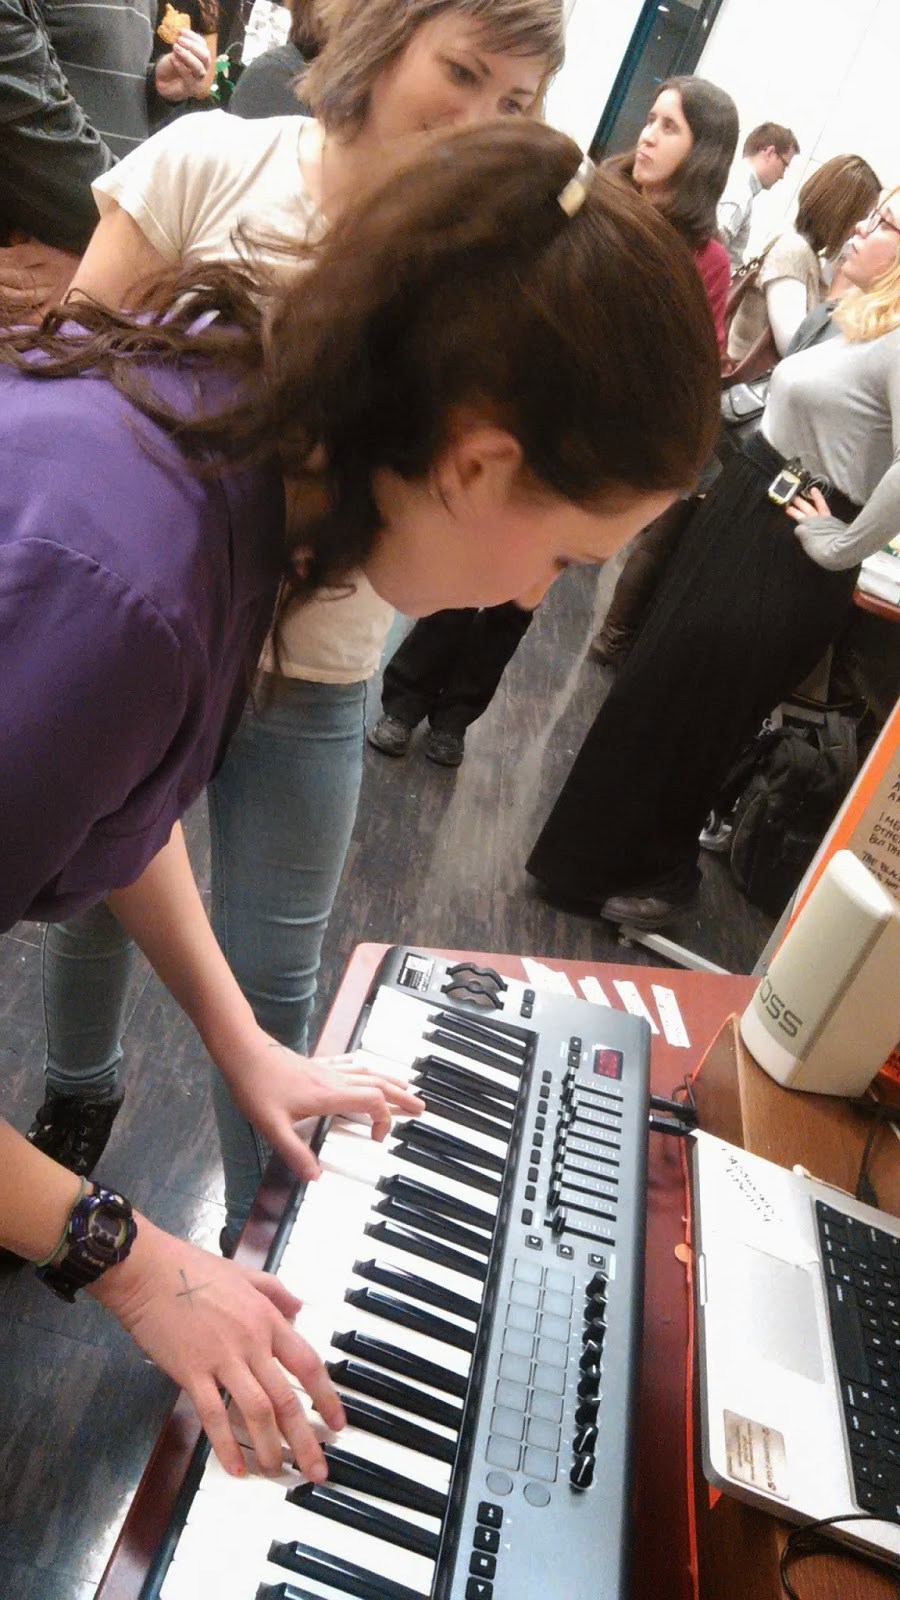 Photo of a woman playing a keyboard in a crowded room.